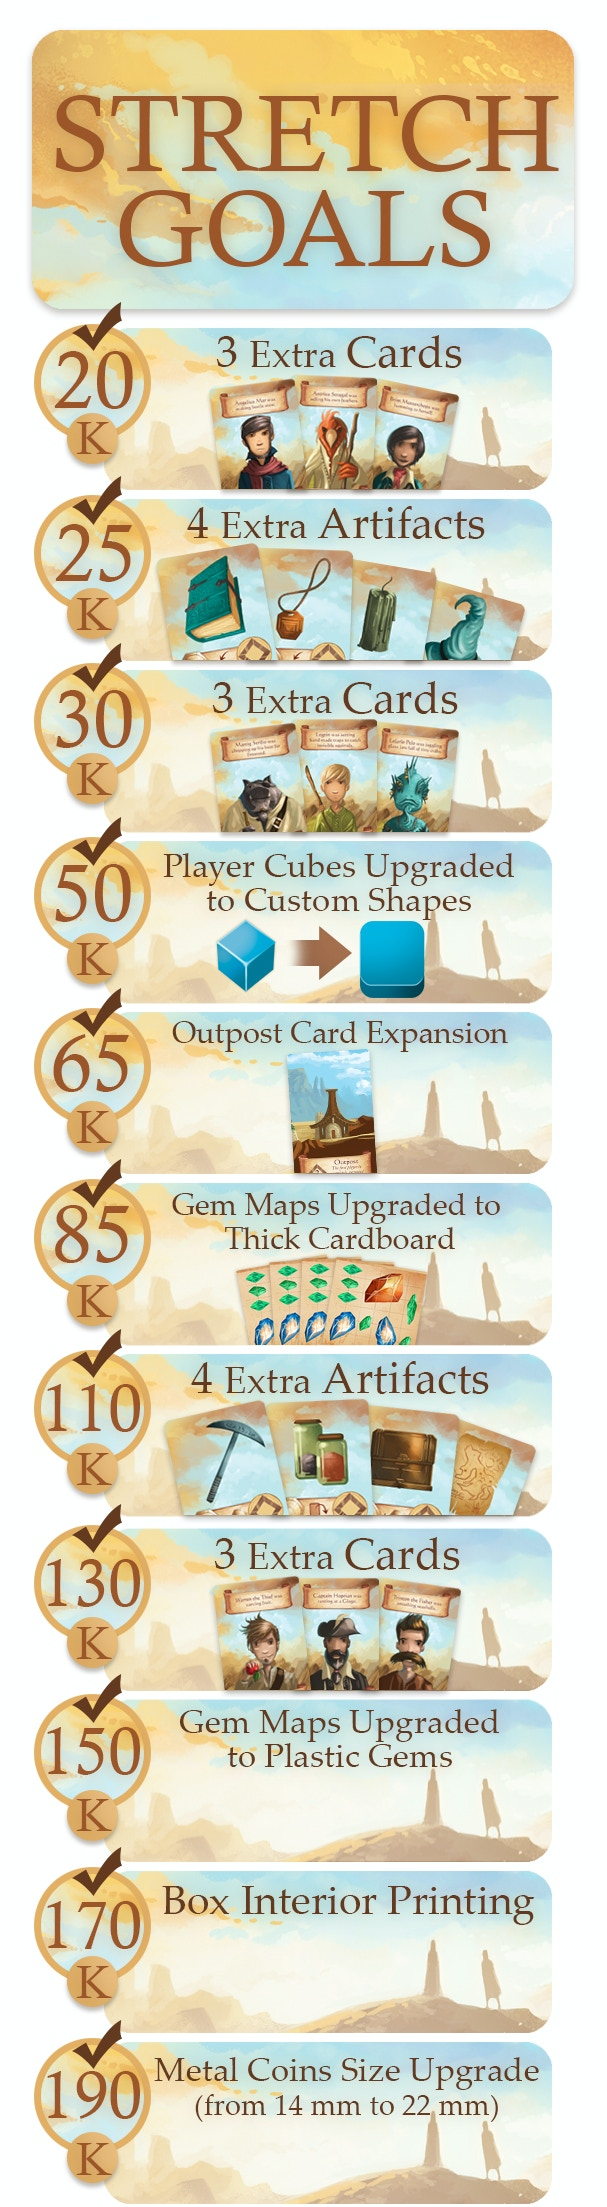 Stretch goals complete!